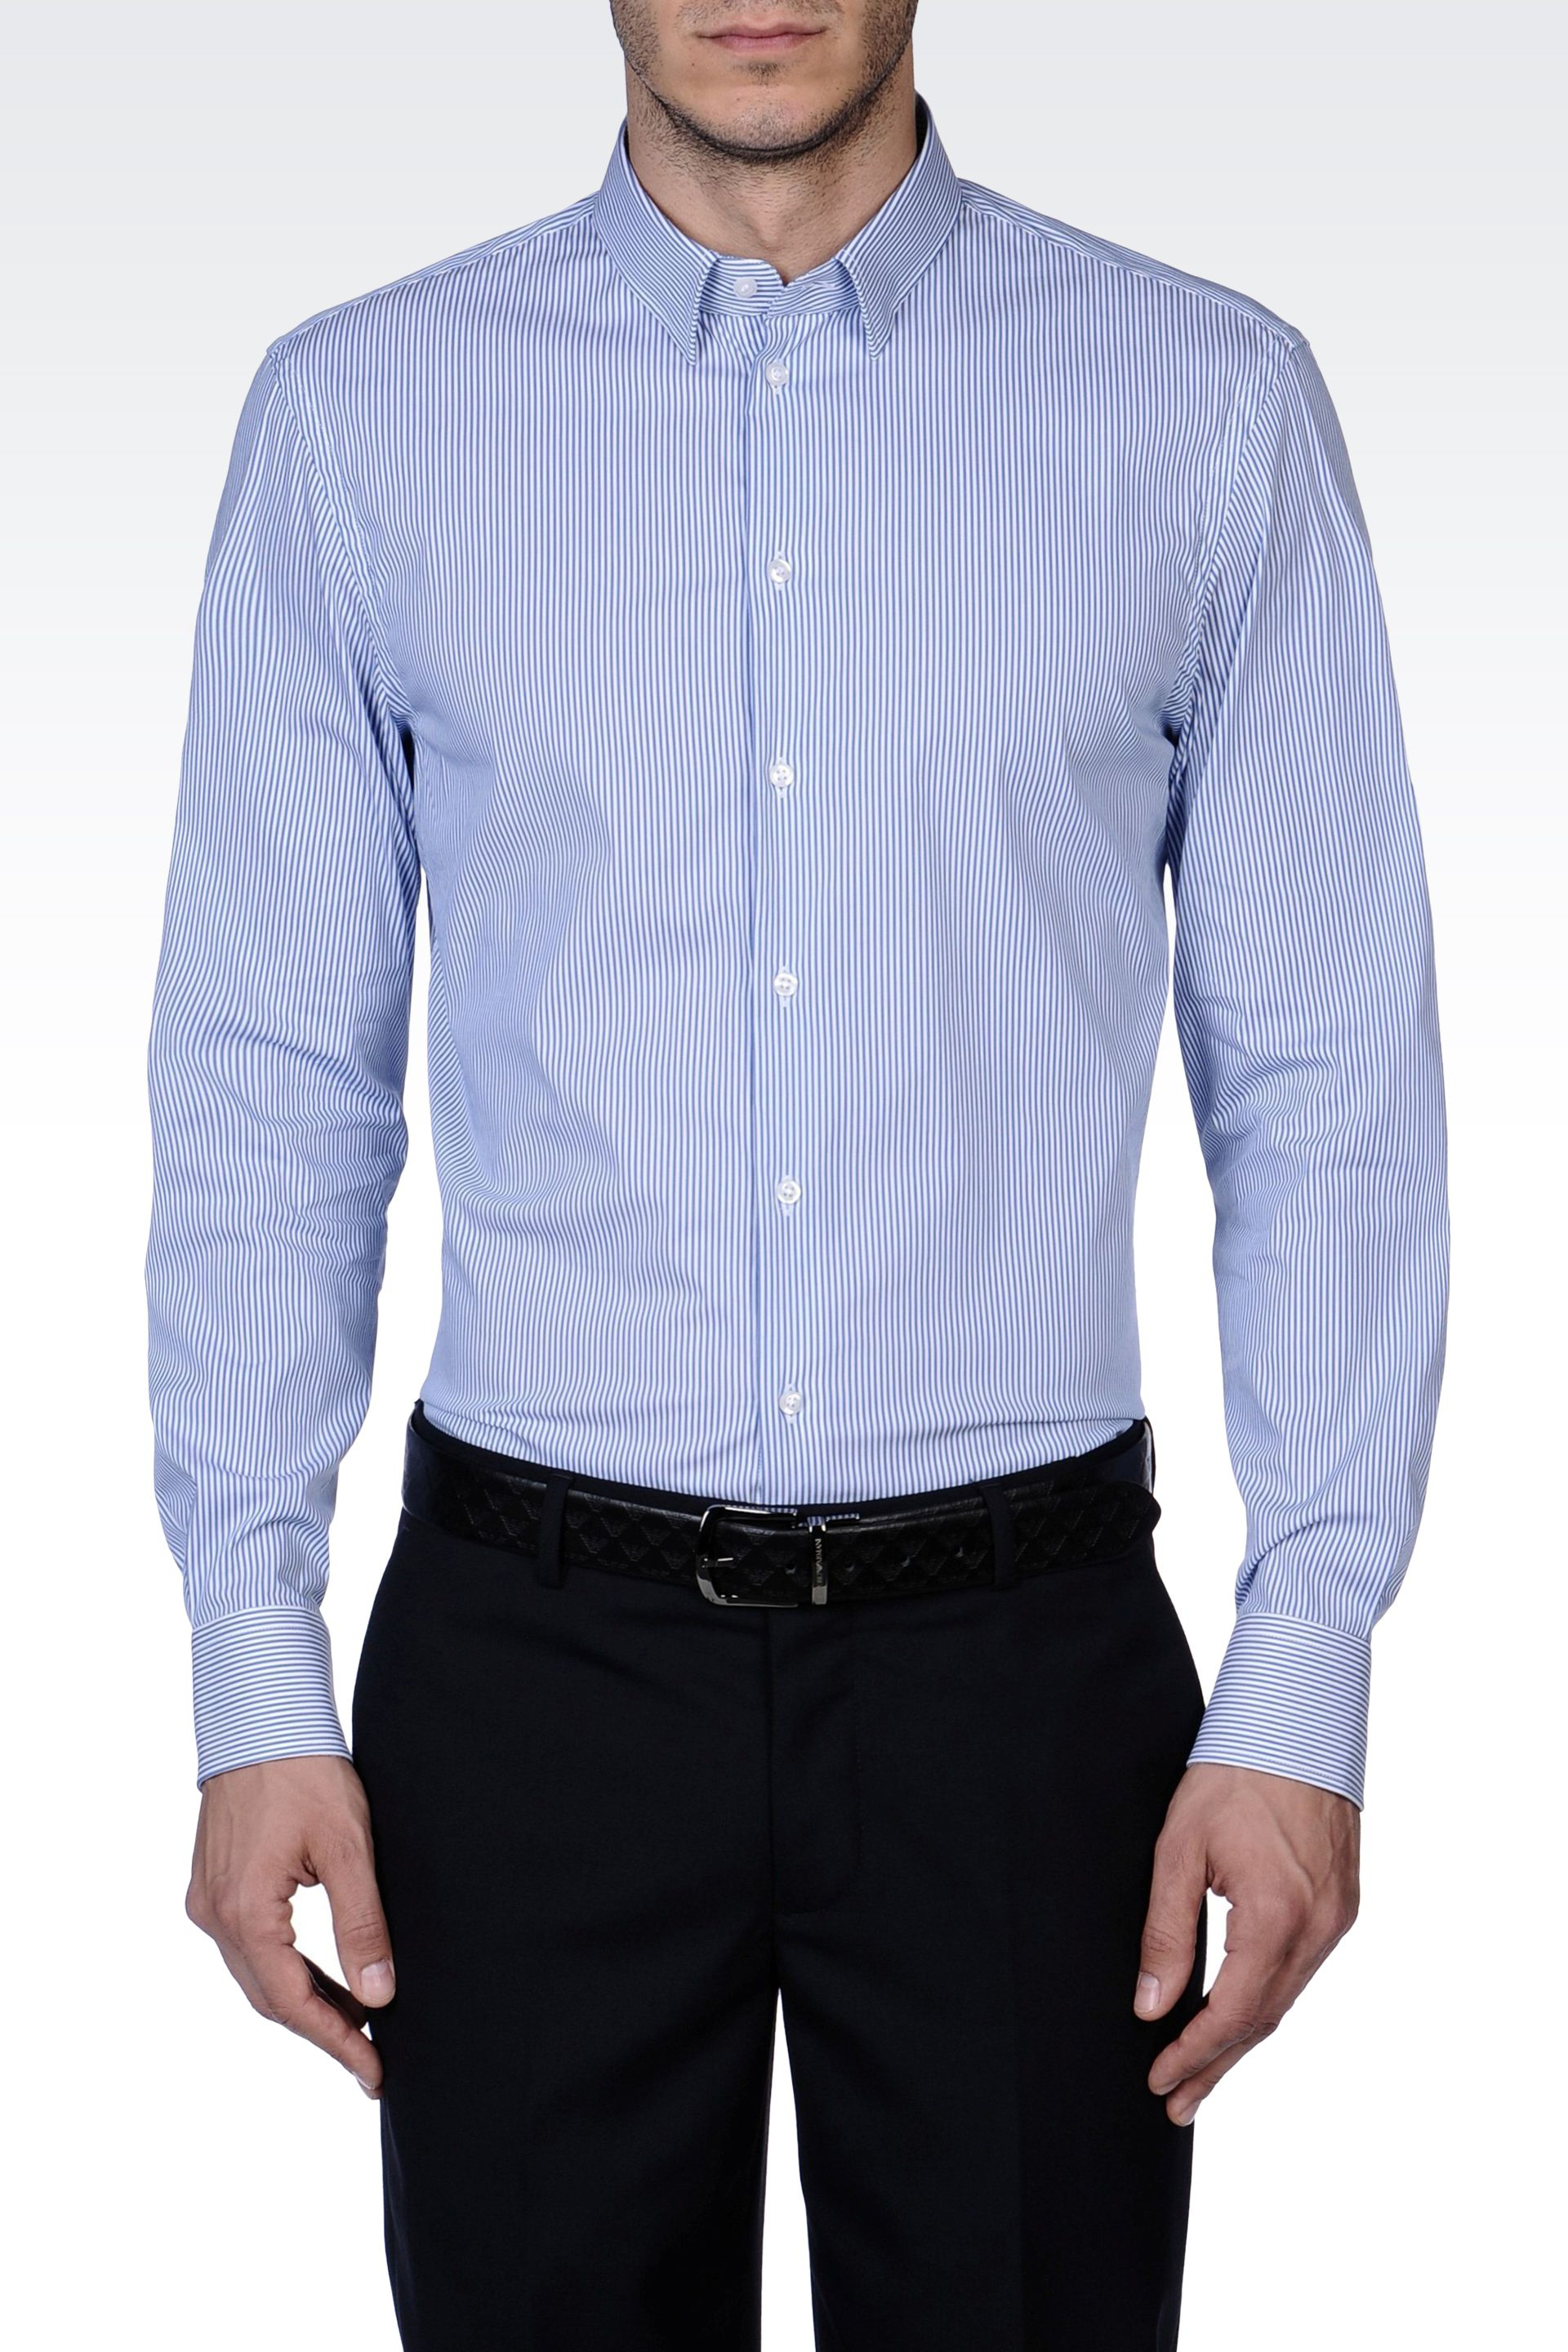 Raul Custom Tailored Shirt | Best Tailor in Bangkok